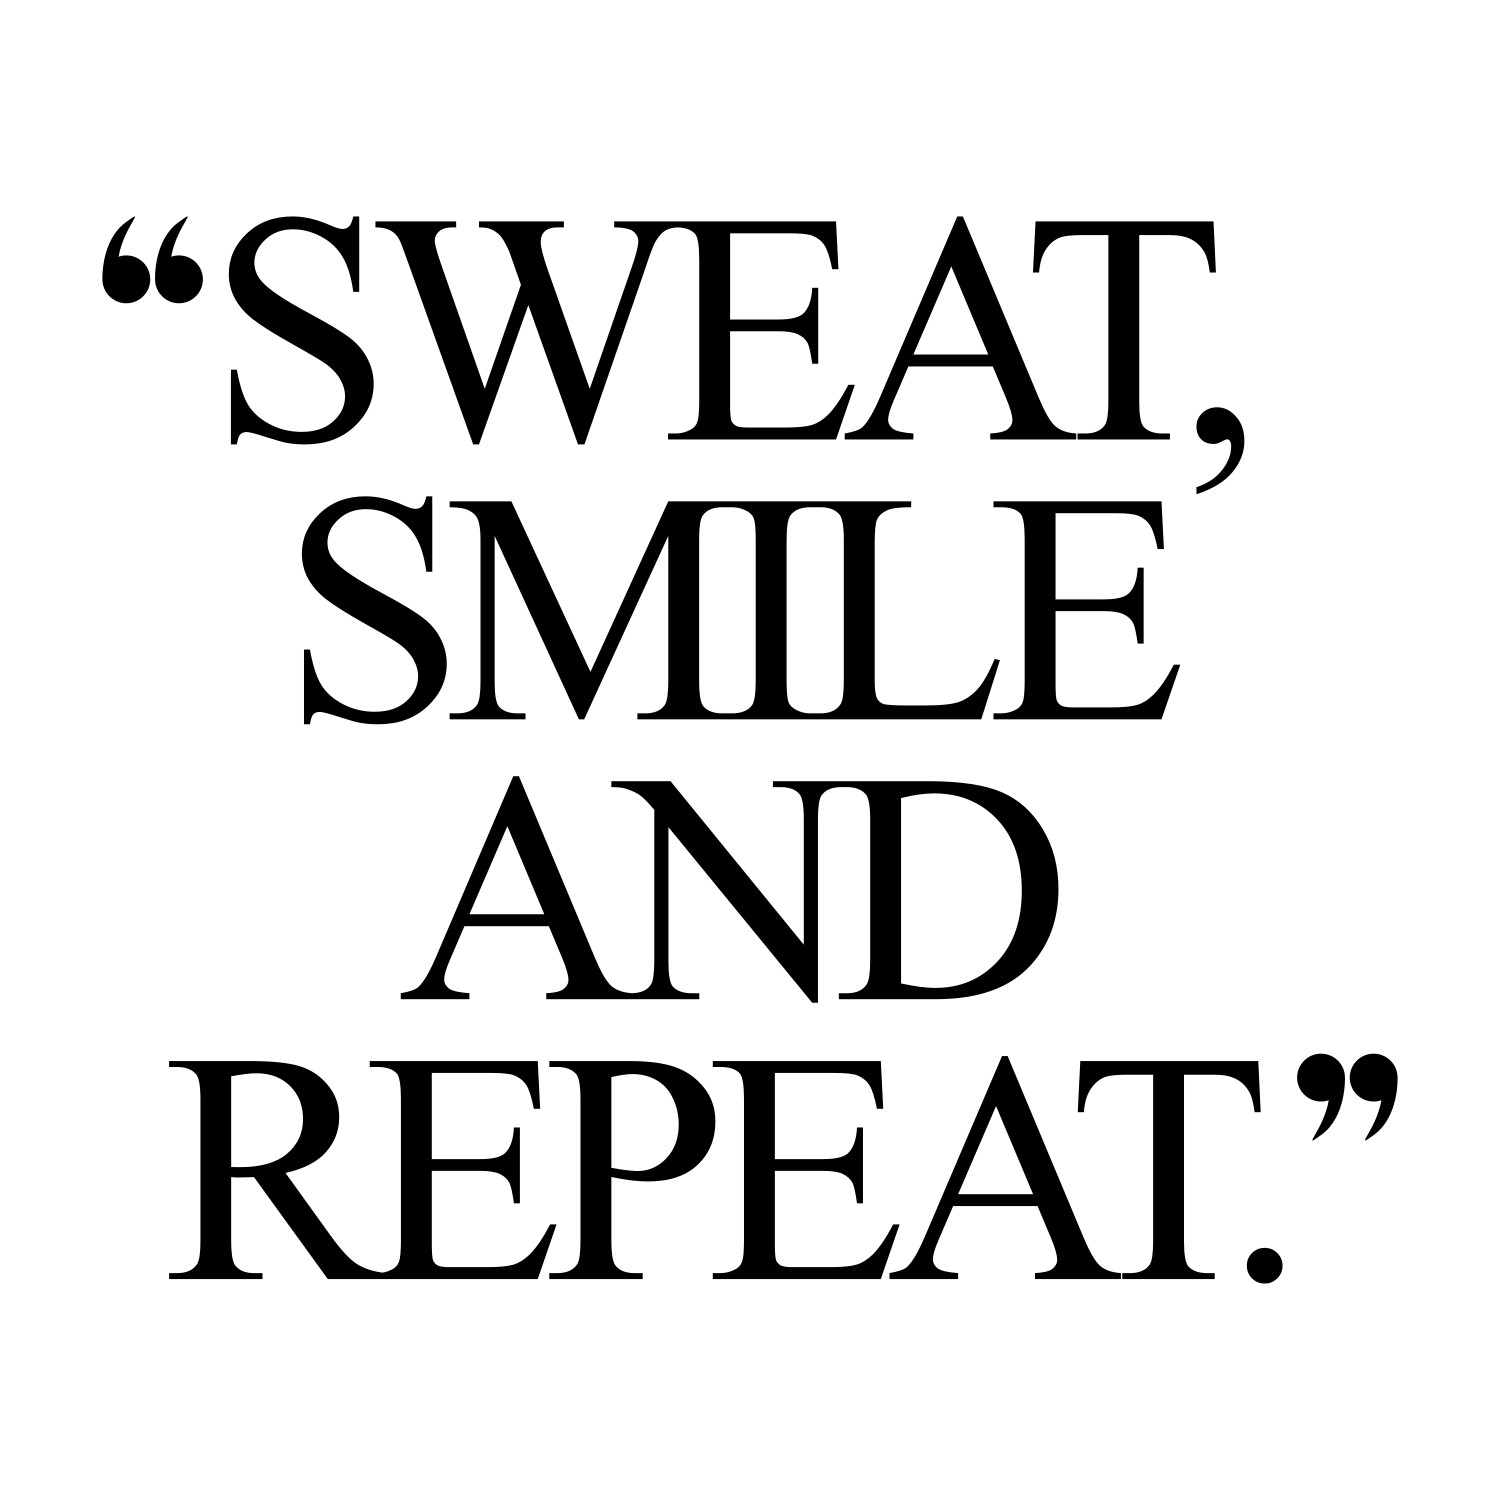 Positive attitude! Browse our collection of inspirational workout quotes and get instant fitness and exercise motivation. Stay focused and get fit, healthy and happy! https://www.spotebi.com/workout-motivation/exercise-motivation-quote-positive-attitude/